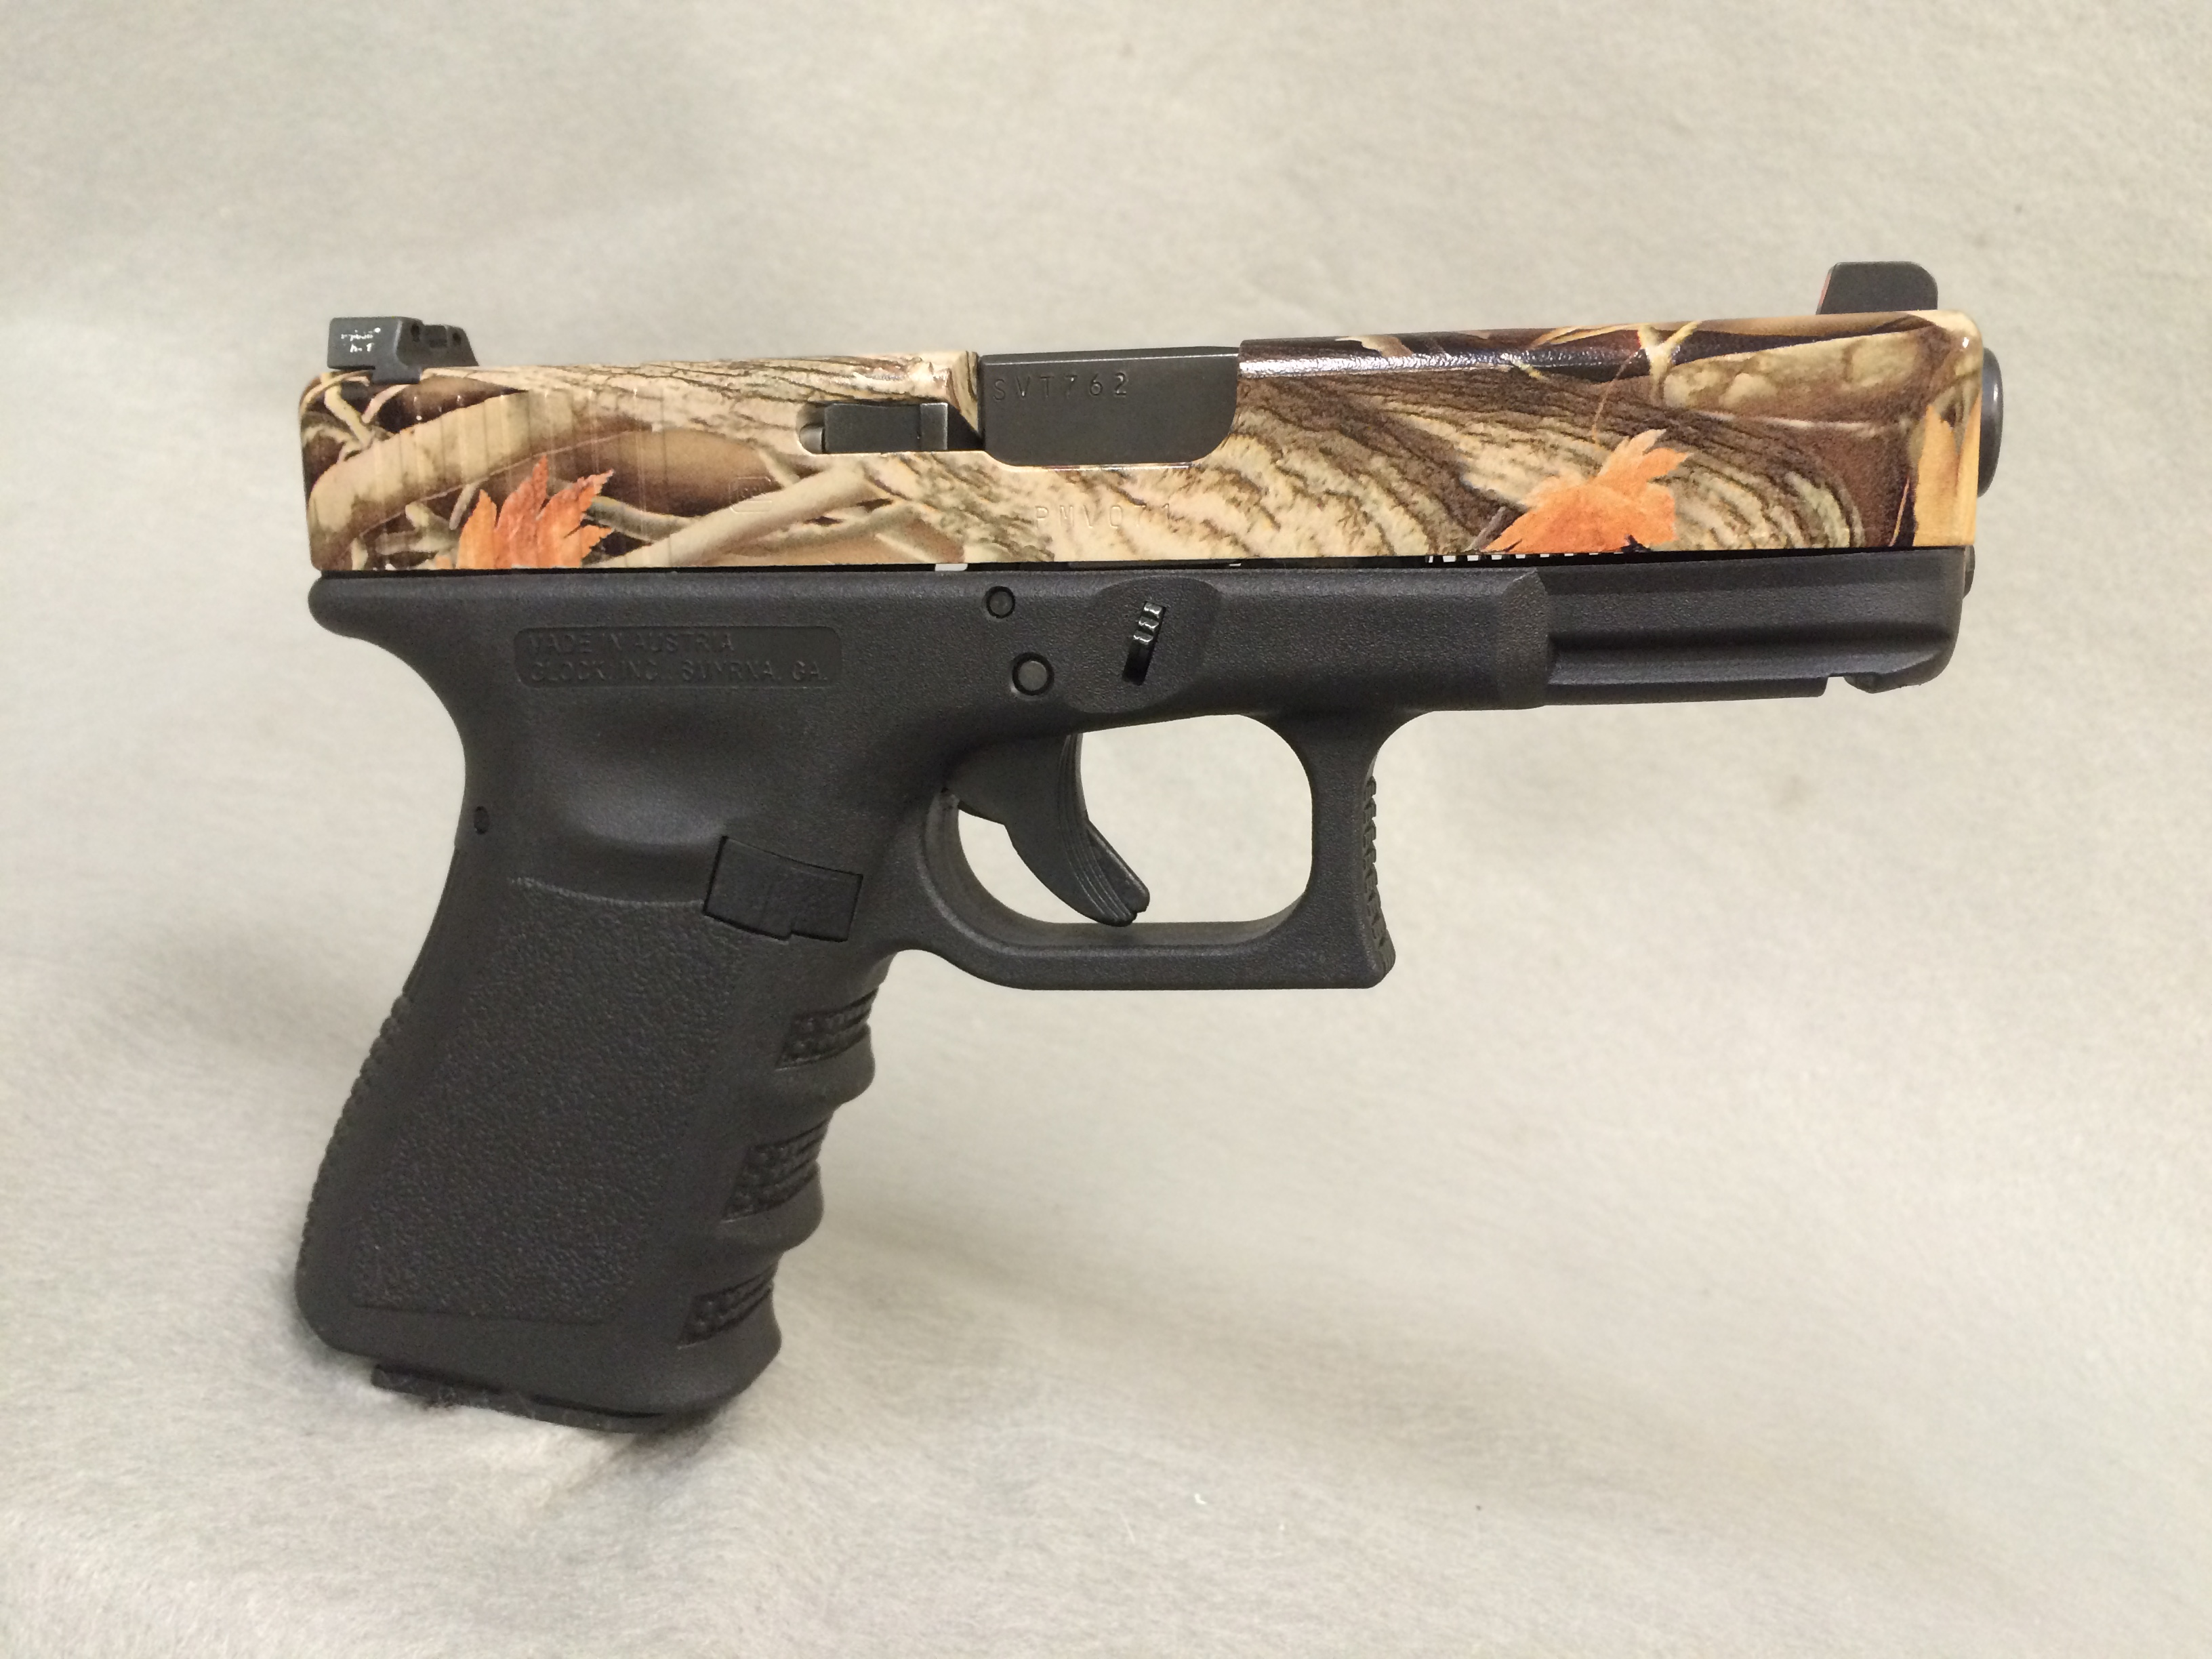 Glock 19 with Camo Slide